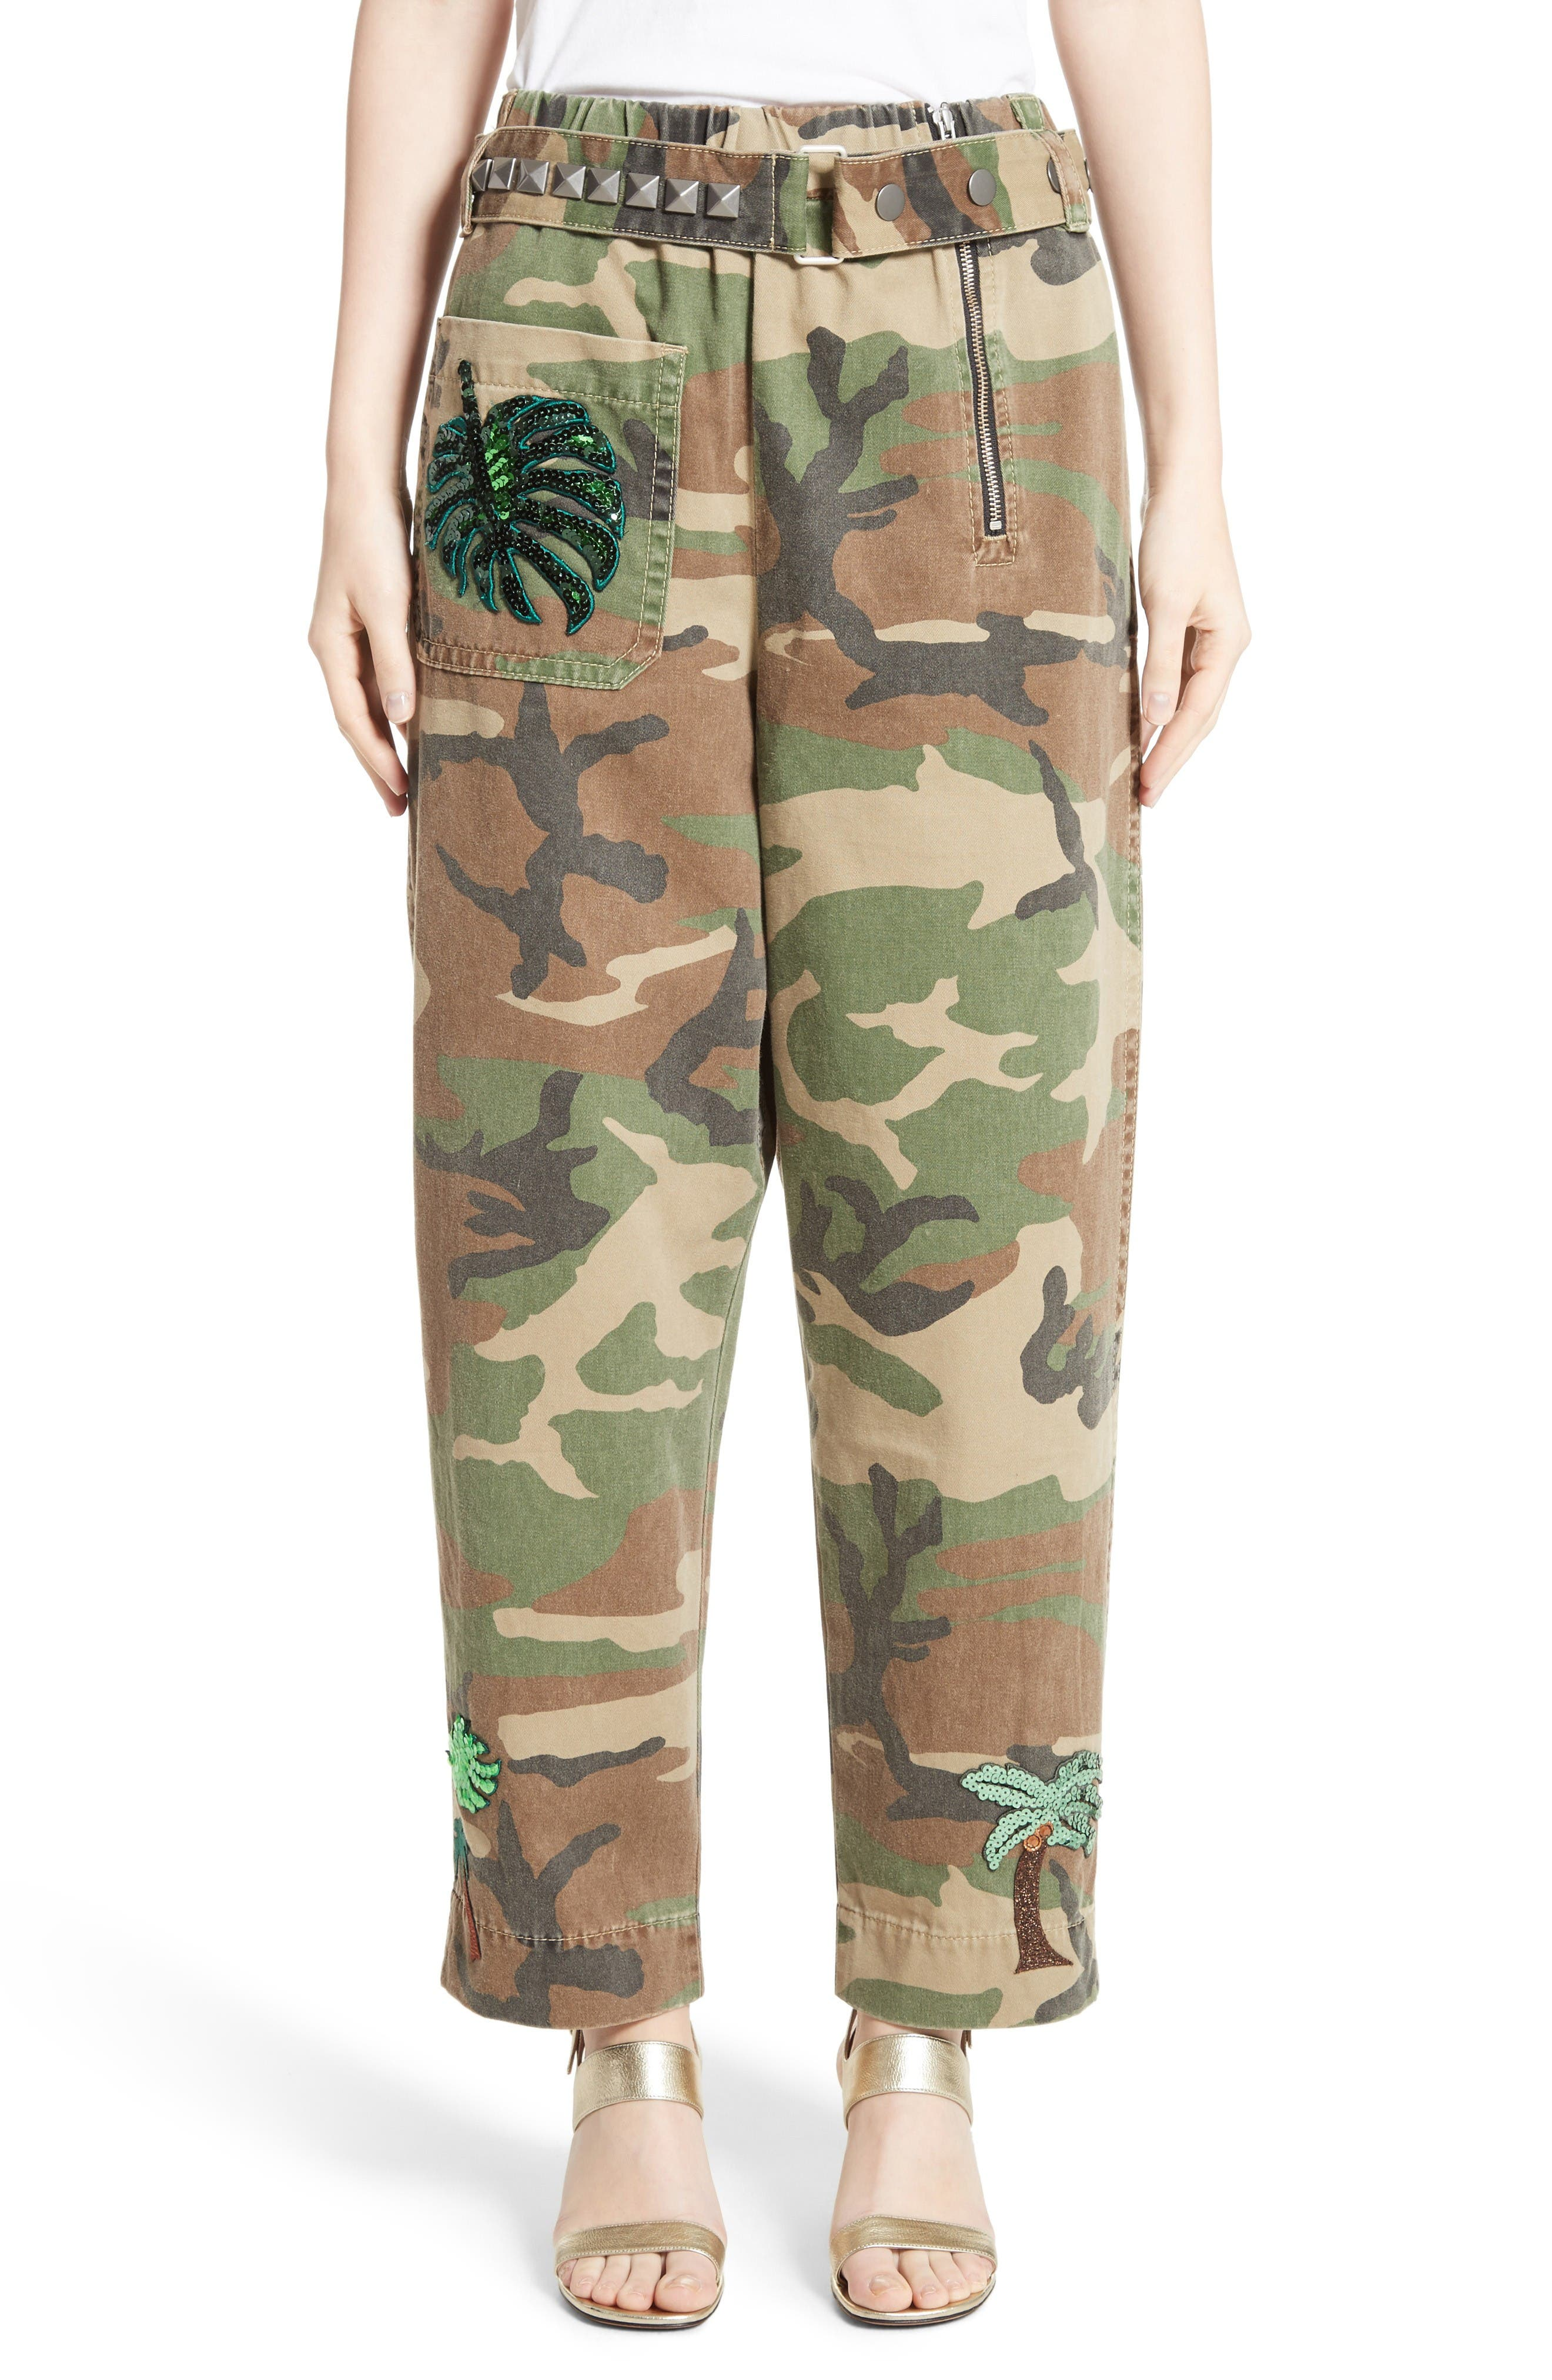 MARC JACOBS Camo Print Pants with Studded Belt